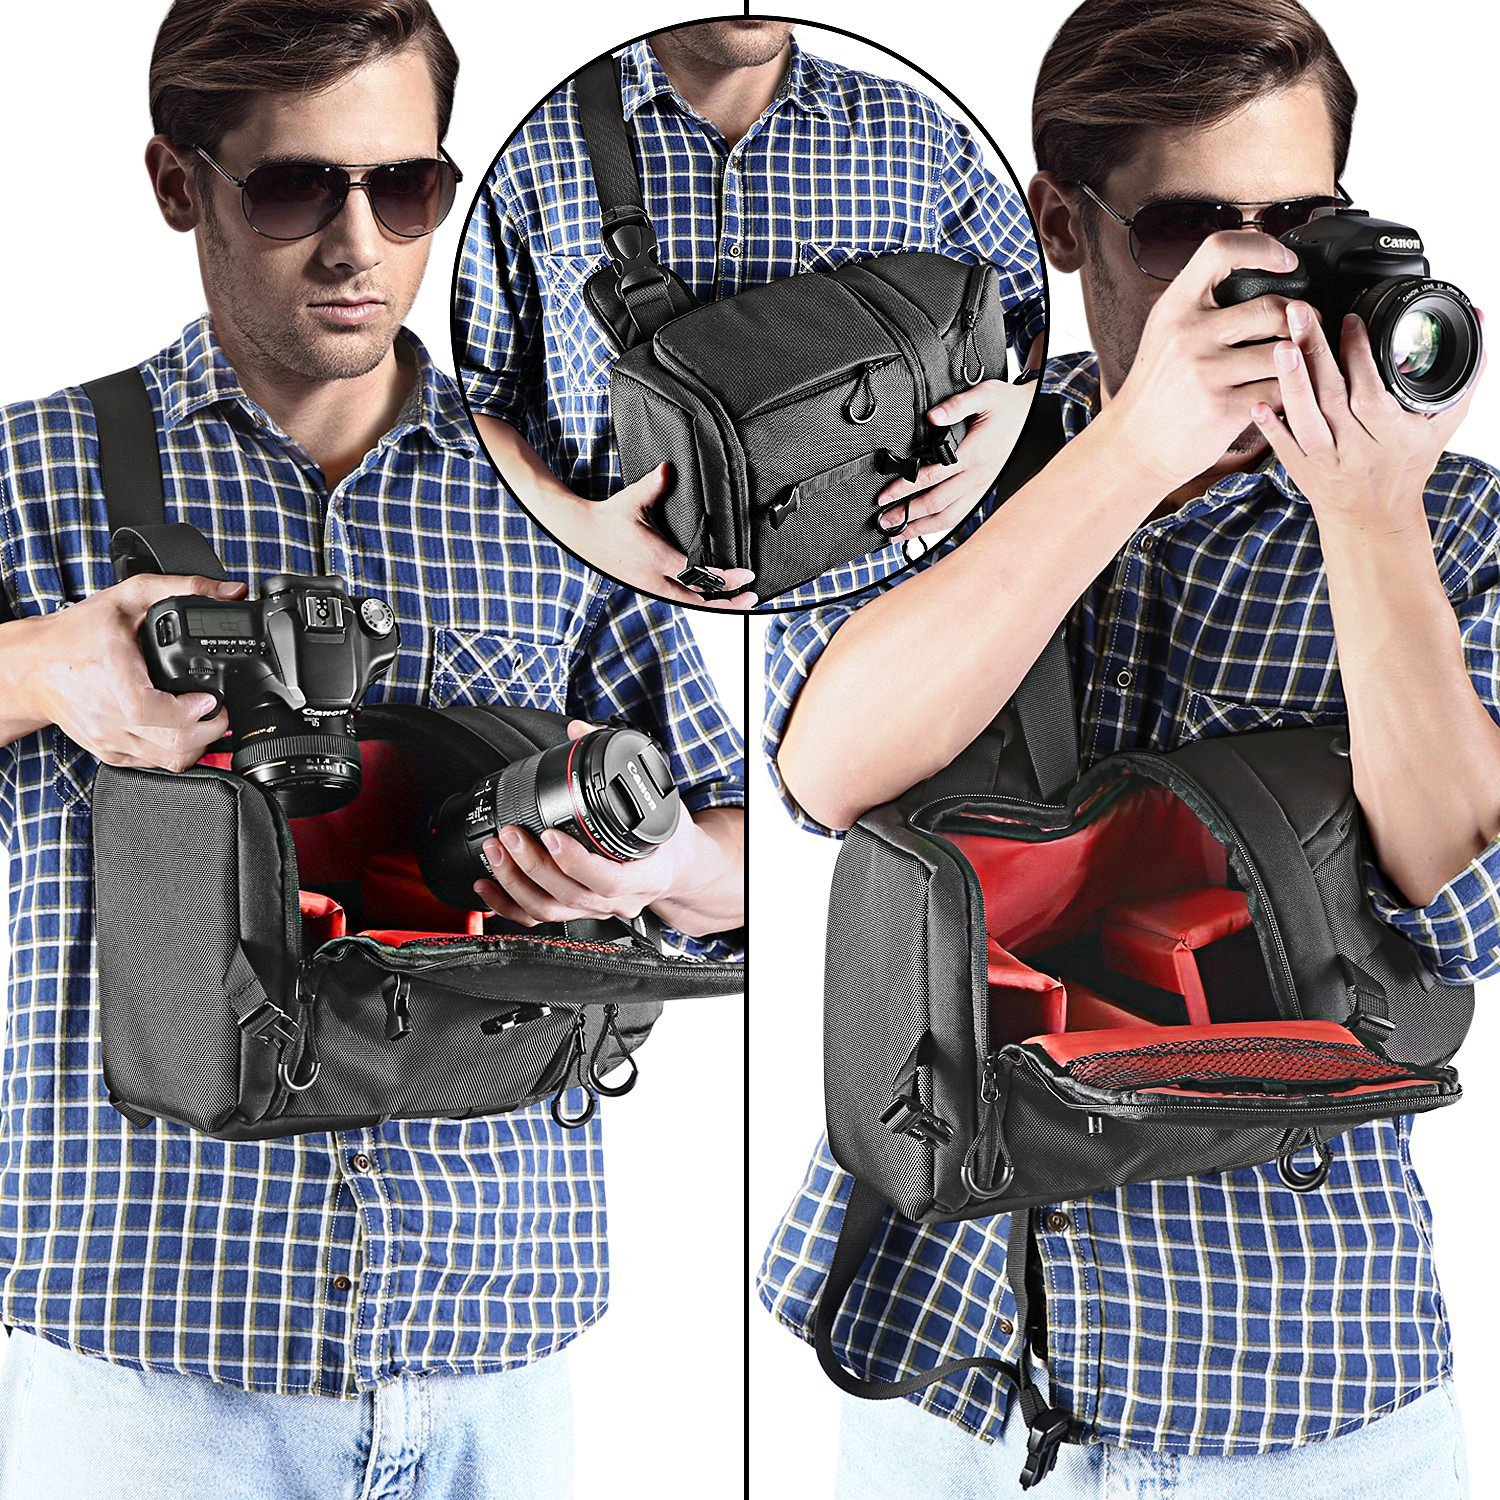 Tripods and Other Accessories Lens Gray Neewer Sling Camera Bag Nikon, Canon, Sony Pentax Olympus etc. Camera Case Backpack with Padded Dividers for DSLR and Mirrorless Cameras